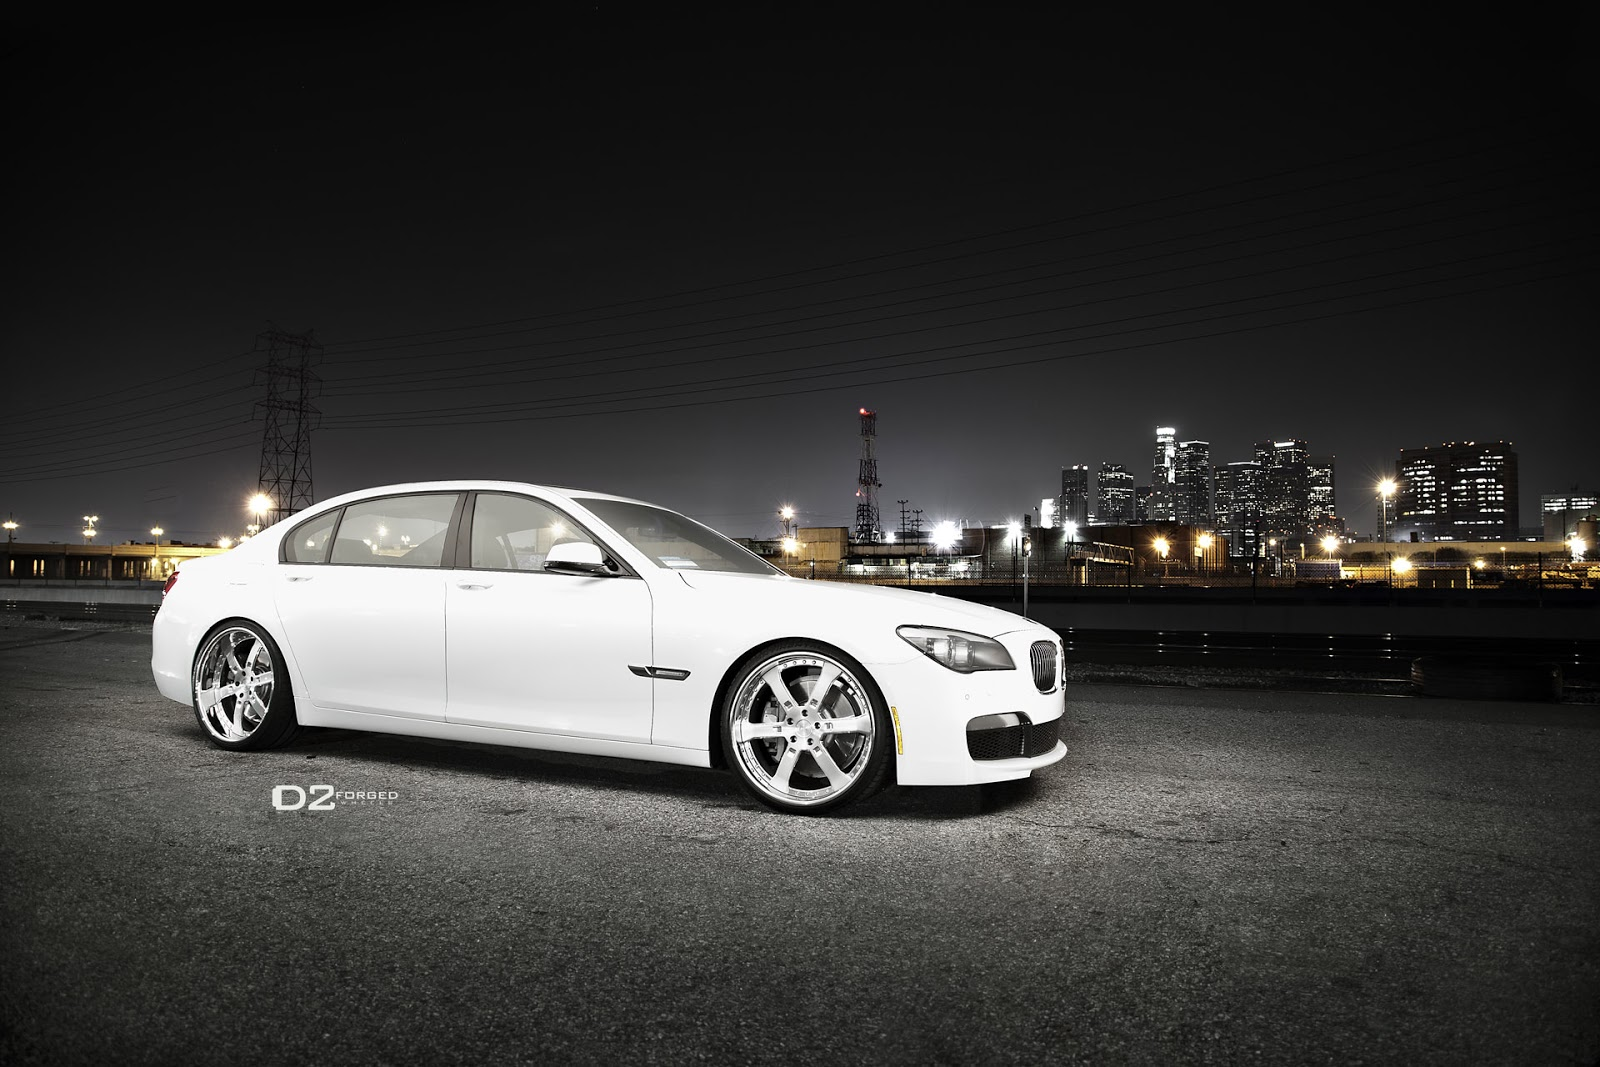 Cars Gto D2forged Bmw 750li Fms 09